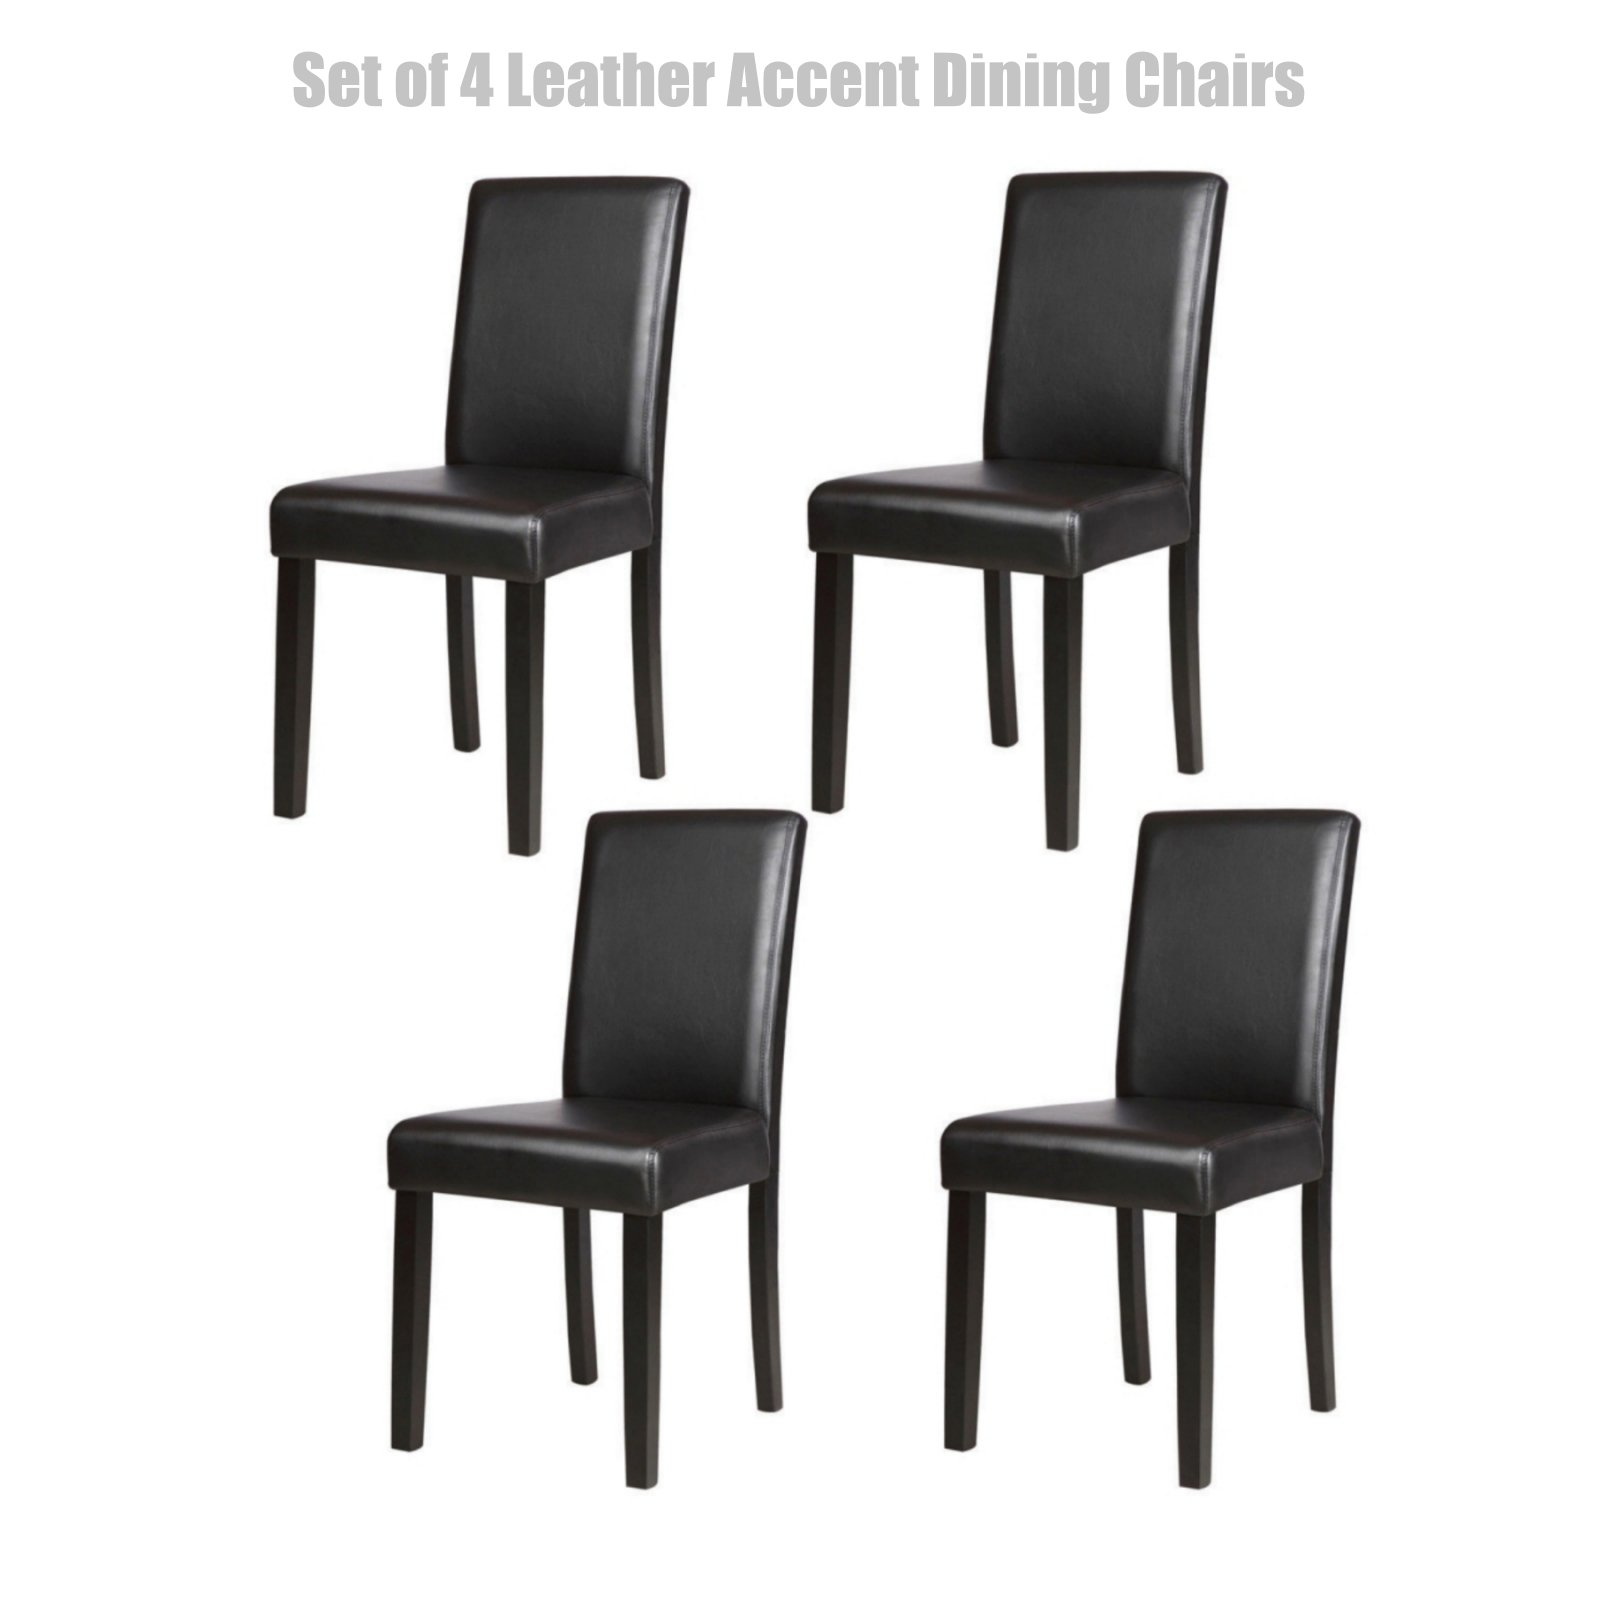 Modern Design Dining Chairs Sturdy Wooden Frame Waterproof Half PU Leather Seat Home Office Furniture Set of 4 Black #1448b